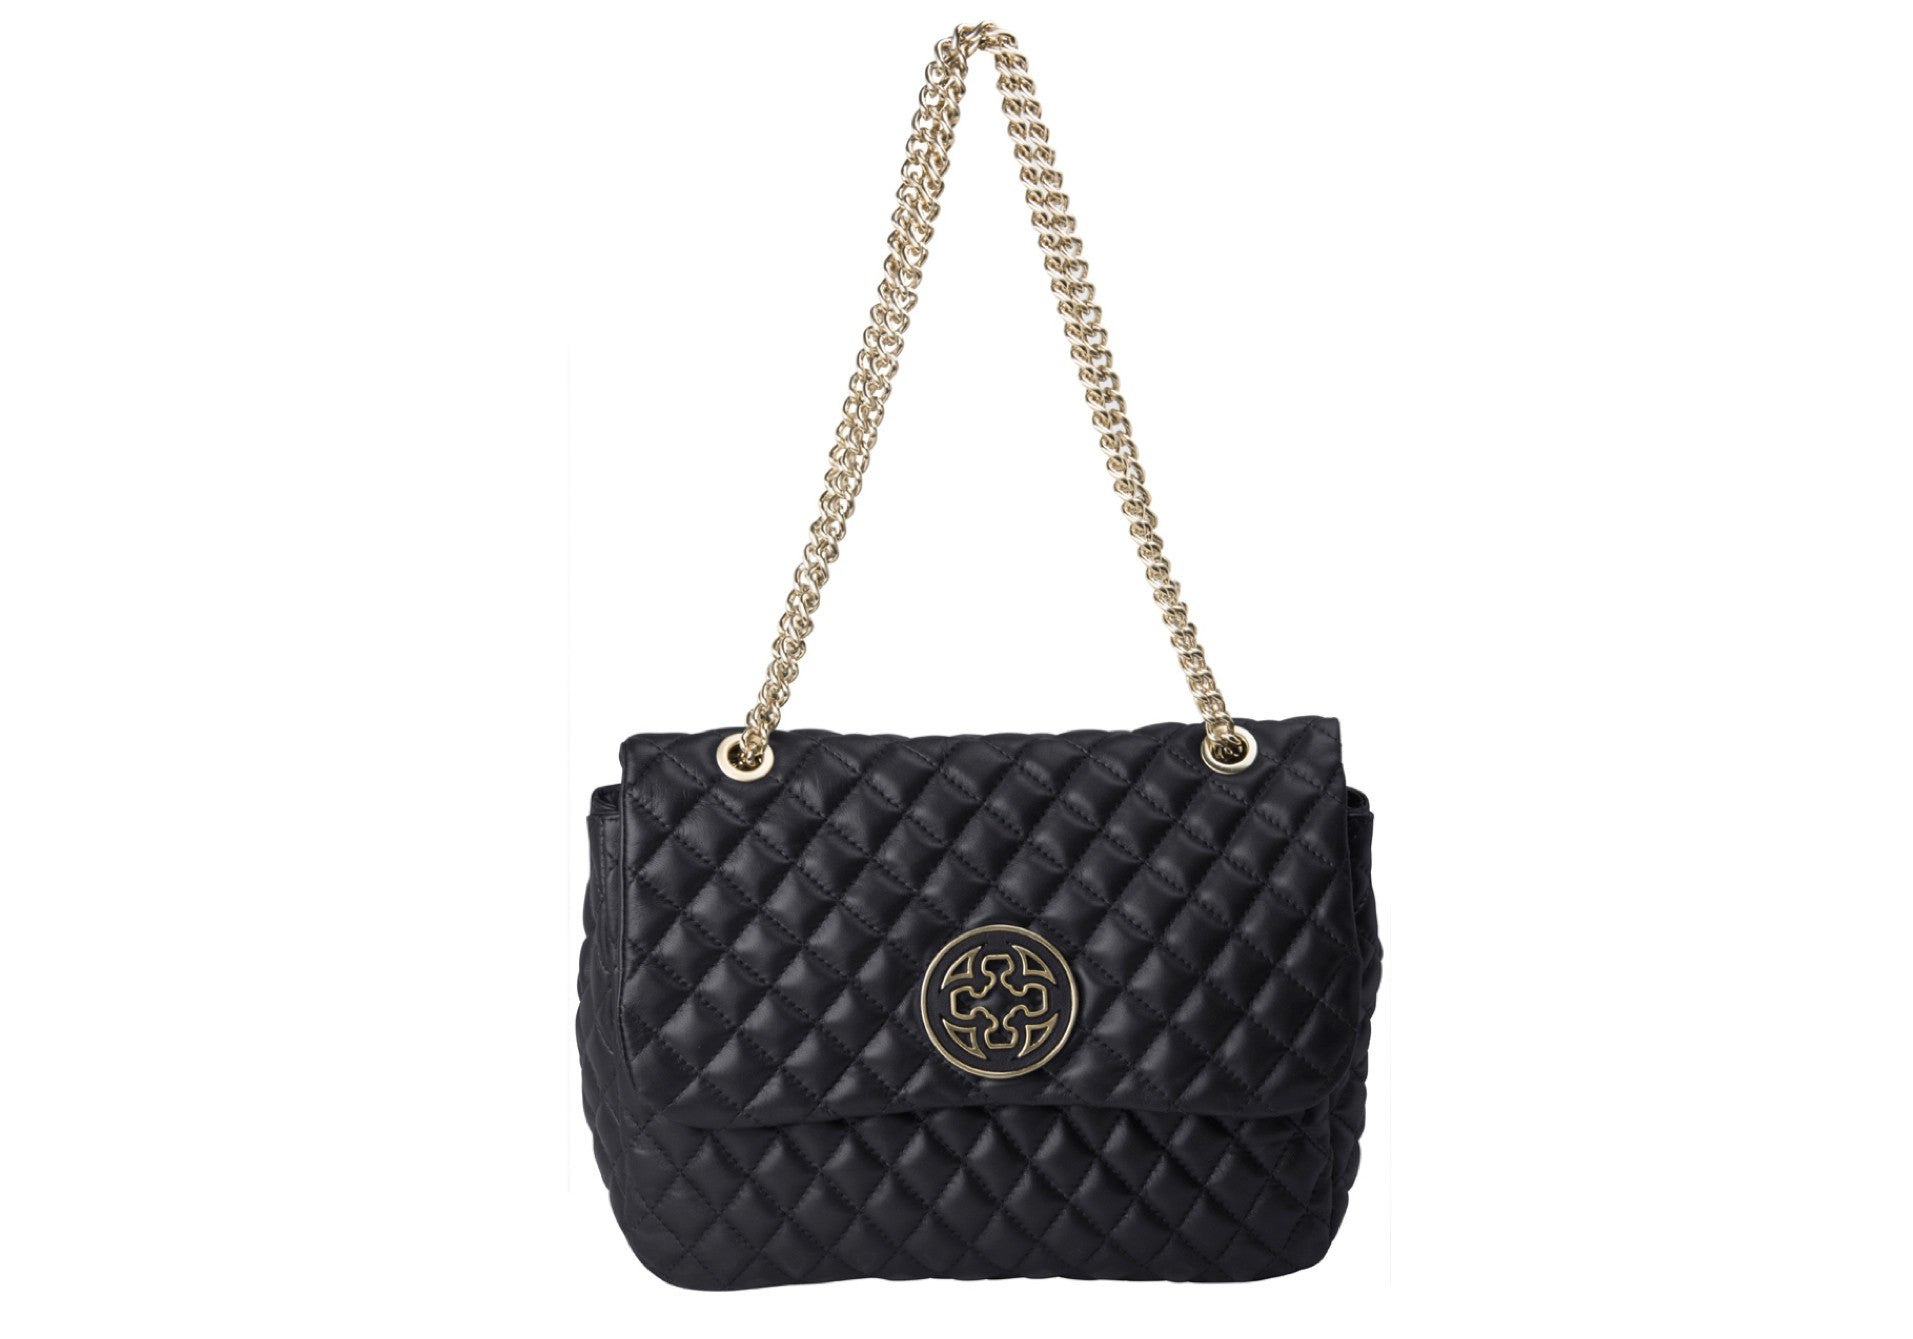 BOY FLAP QUILTED BLACK HANDBAG - DPARZ